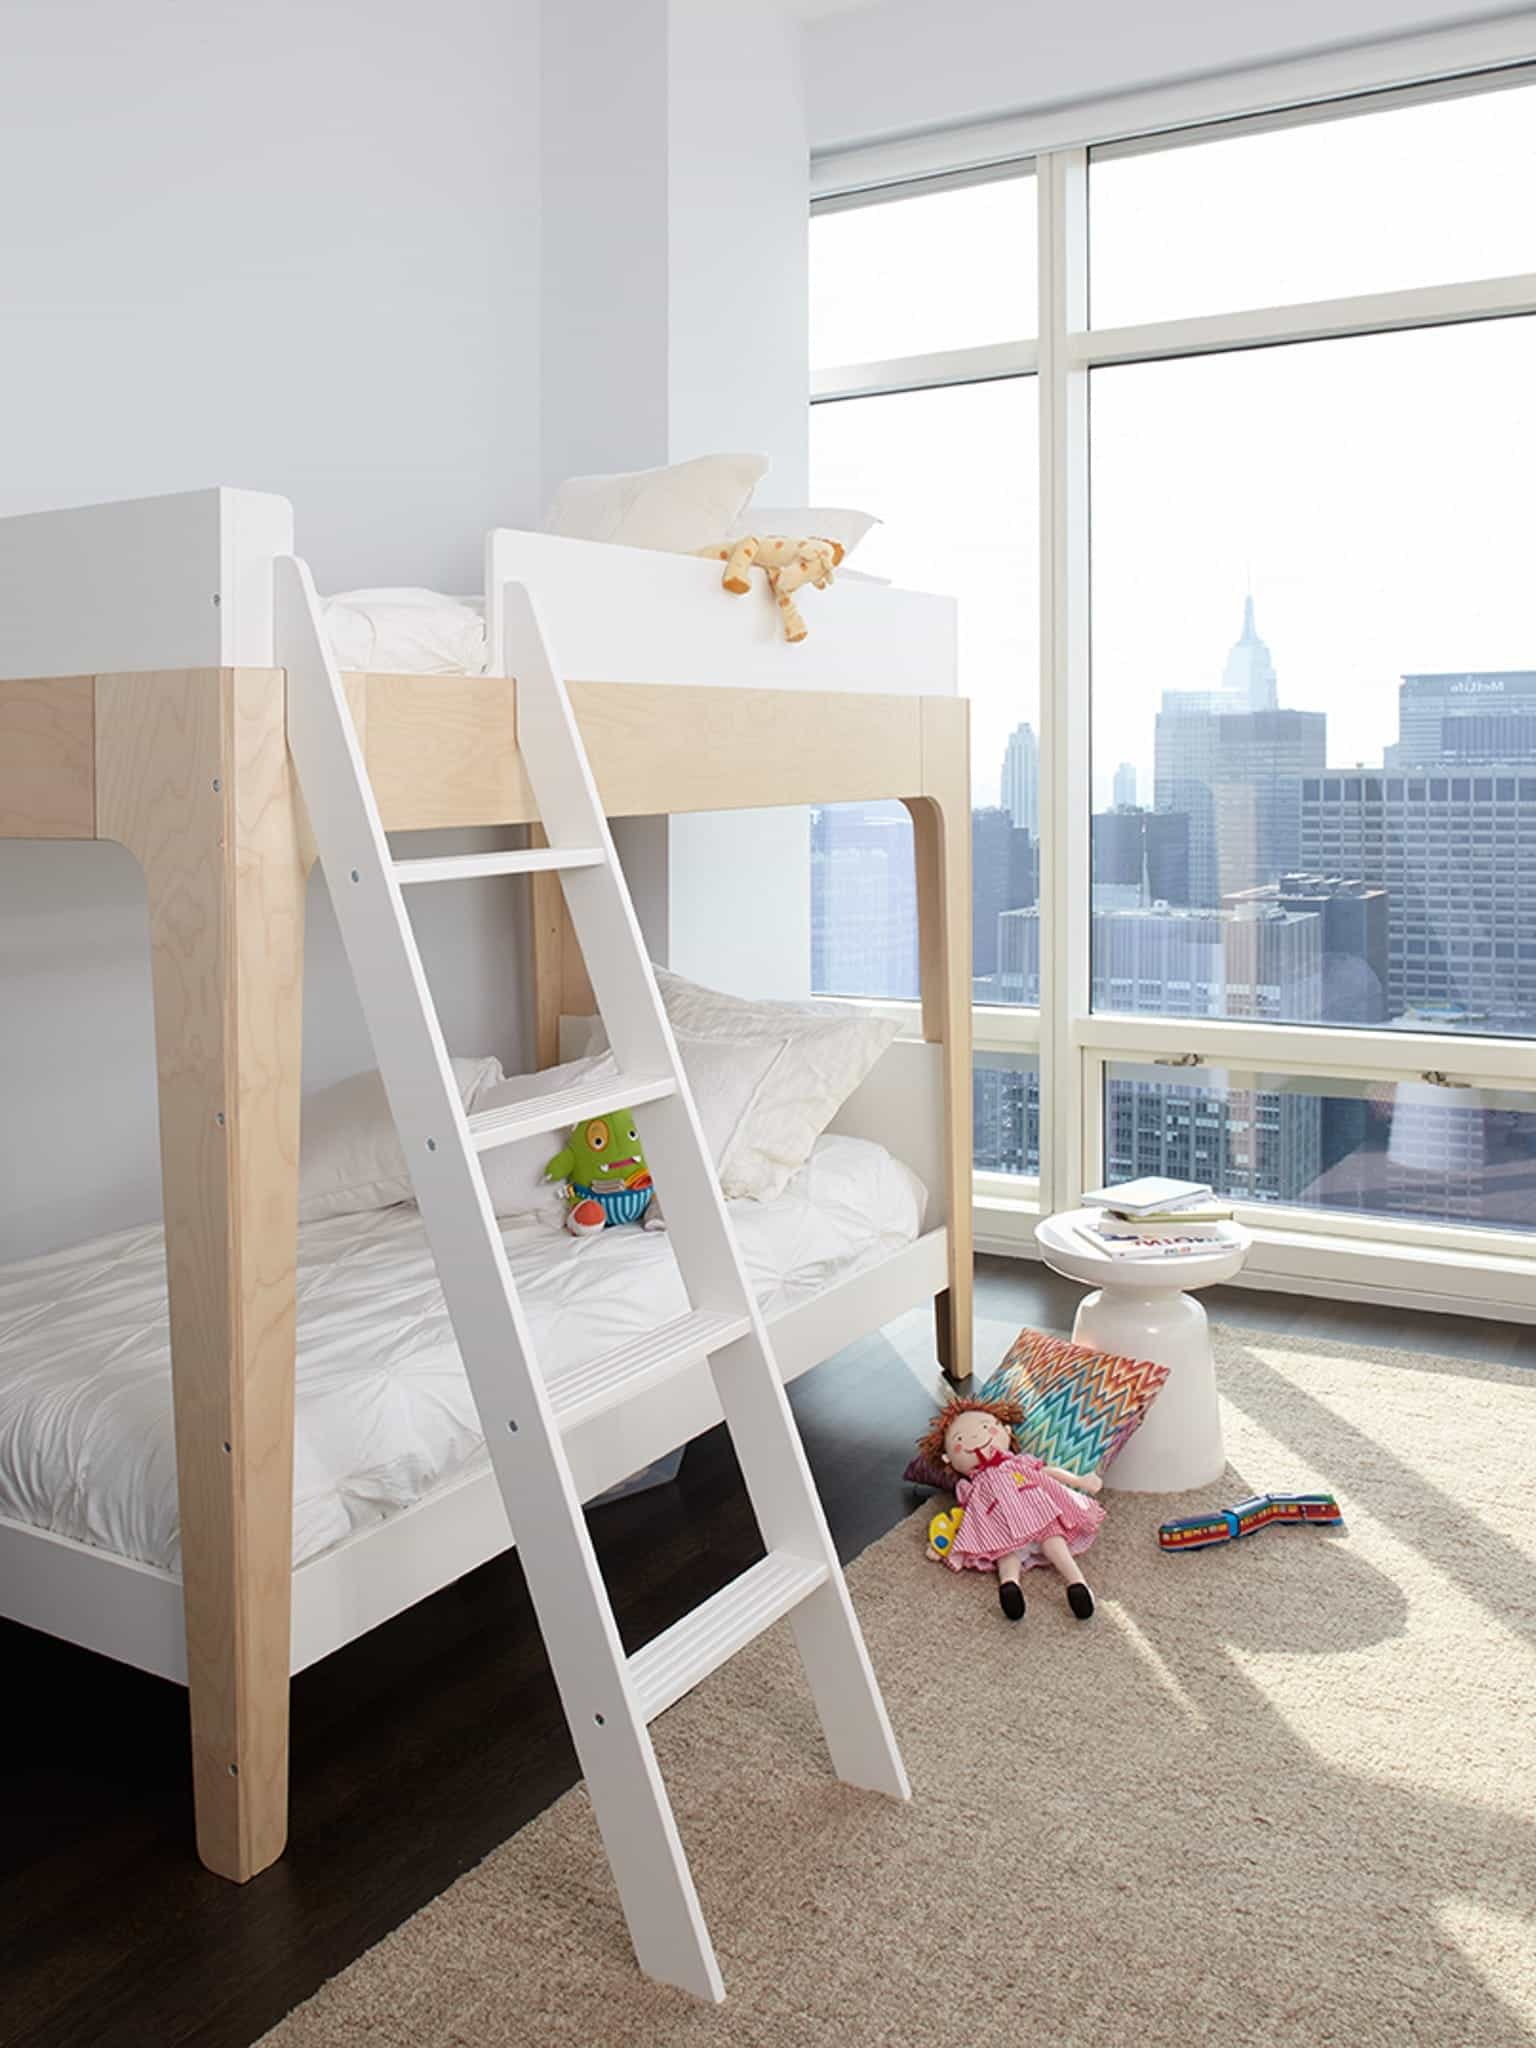 Kid's Bedroom With Bunk Beds For Urban Apartment (Image 18 of 27)